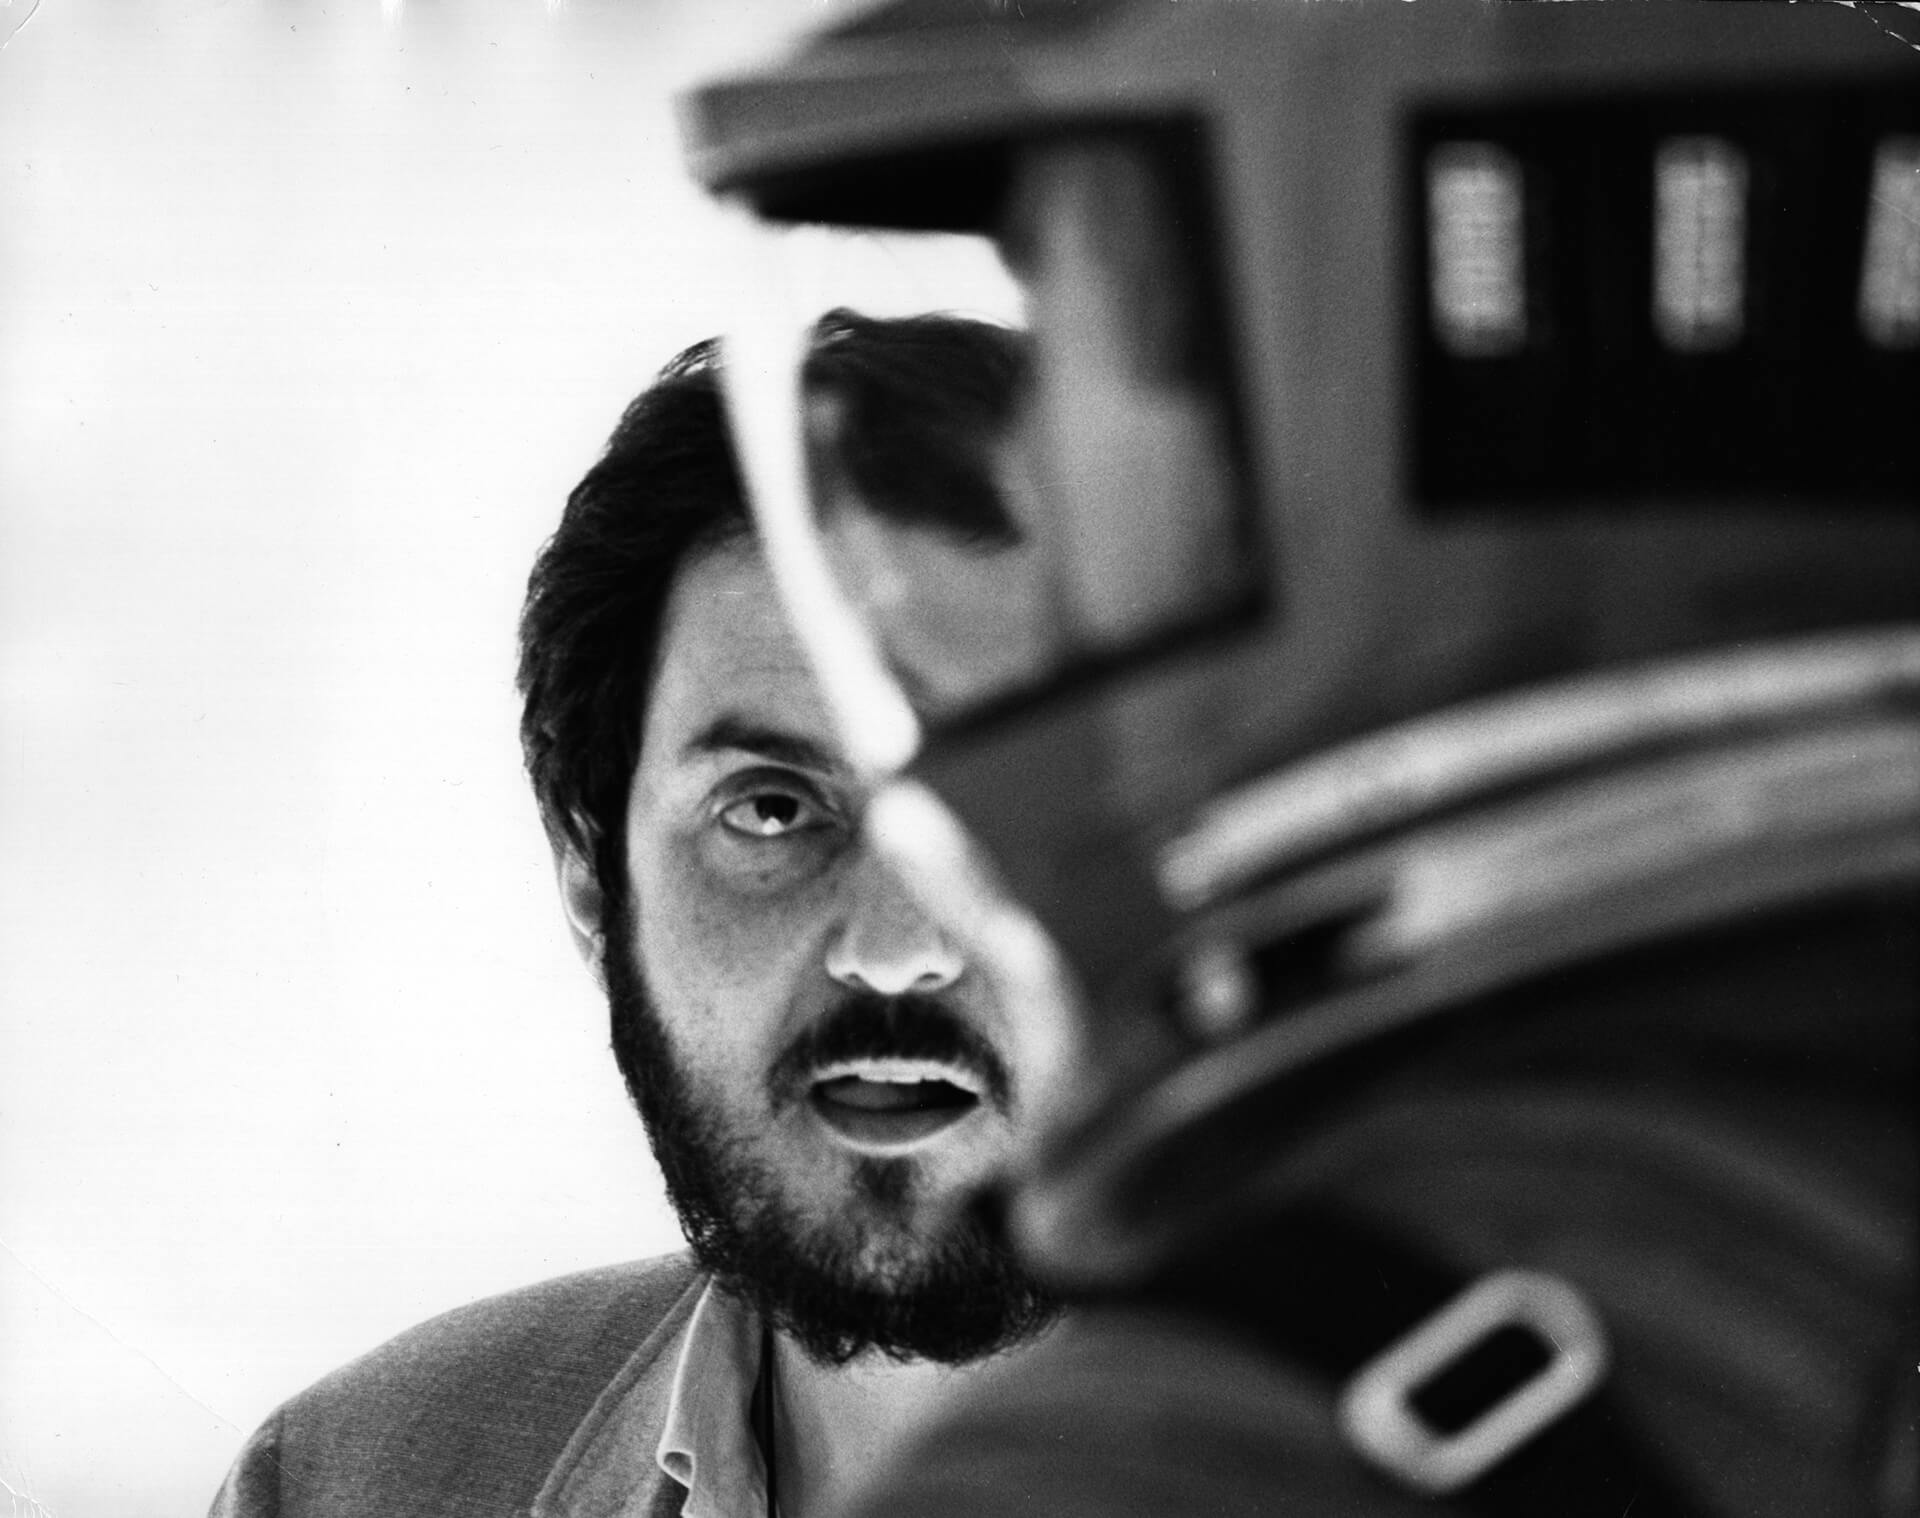 Stanley Kubrick on the sets of 2001: A Space Odyssey (1968) | Space Odyssey exhibition | Stanley Kubrick | STIRworld